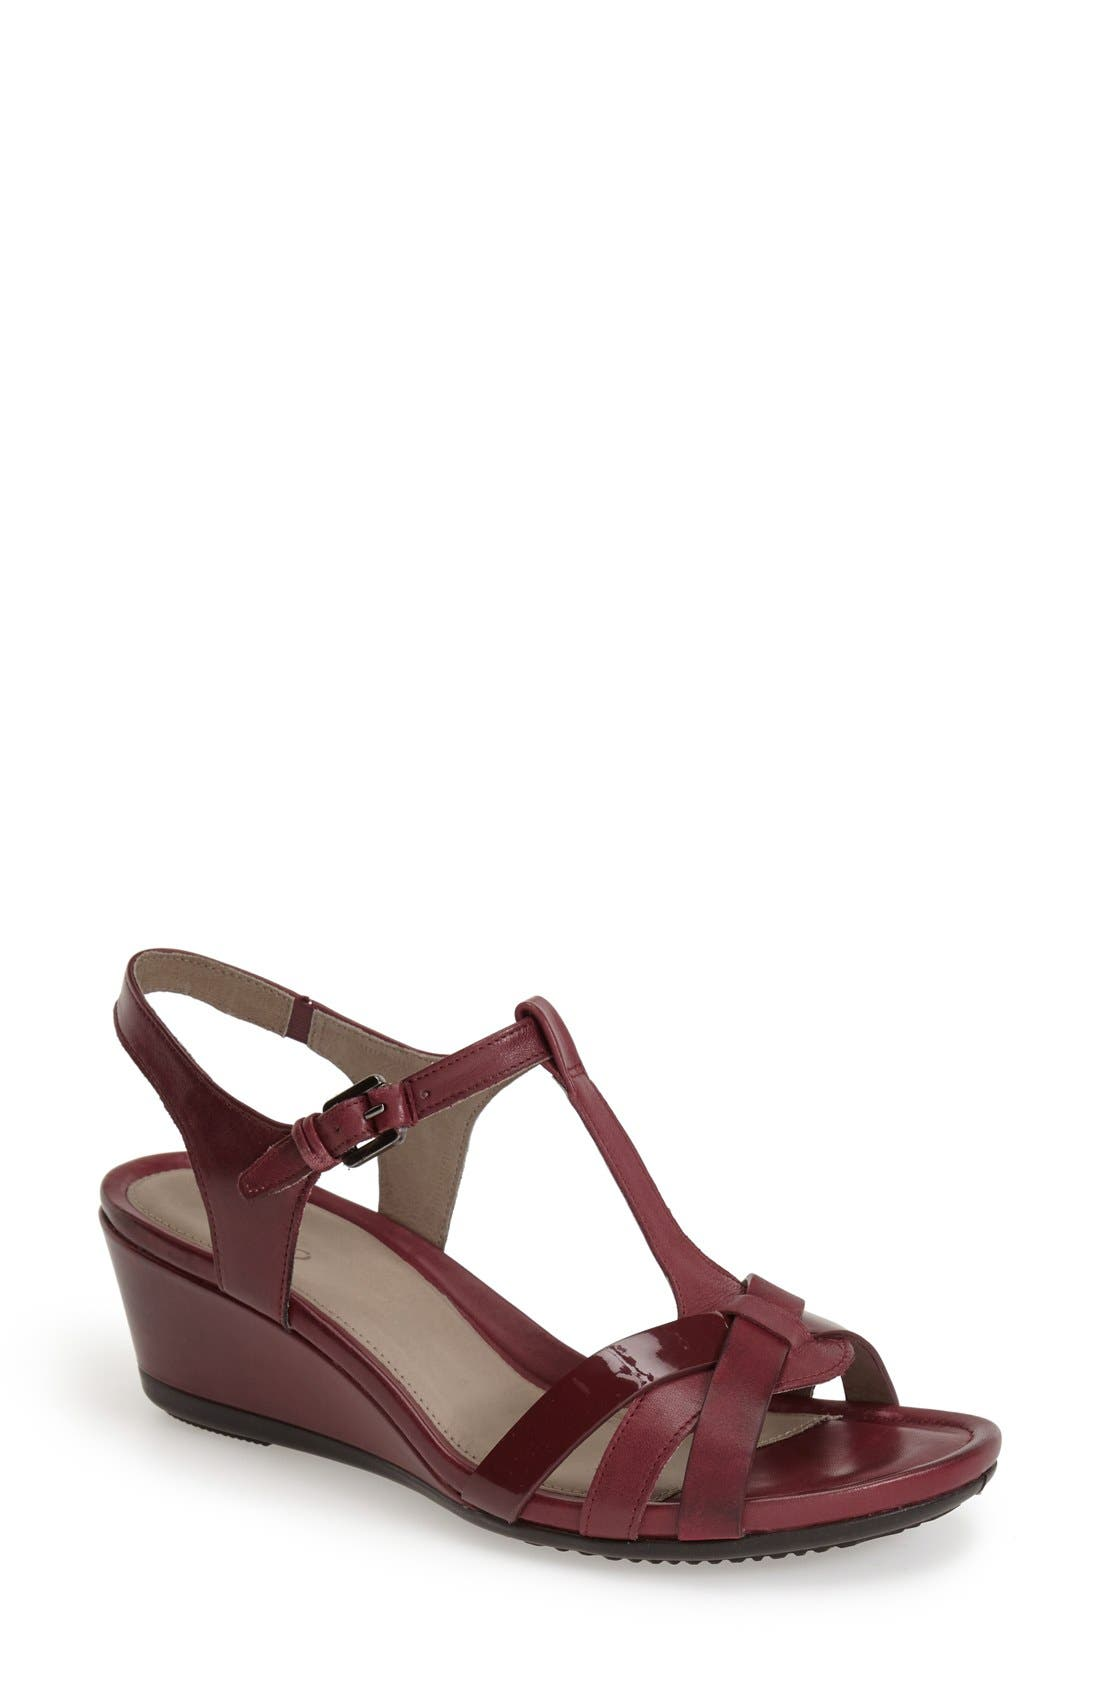 Main Image - ECCO 'Touch 45' T-Strap Wedge Sandal (Women)